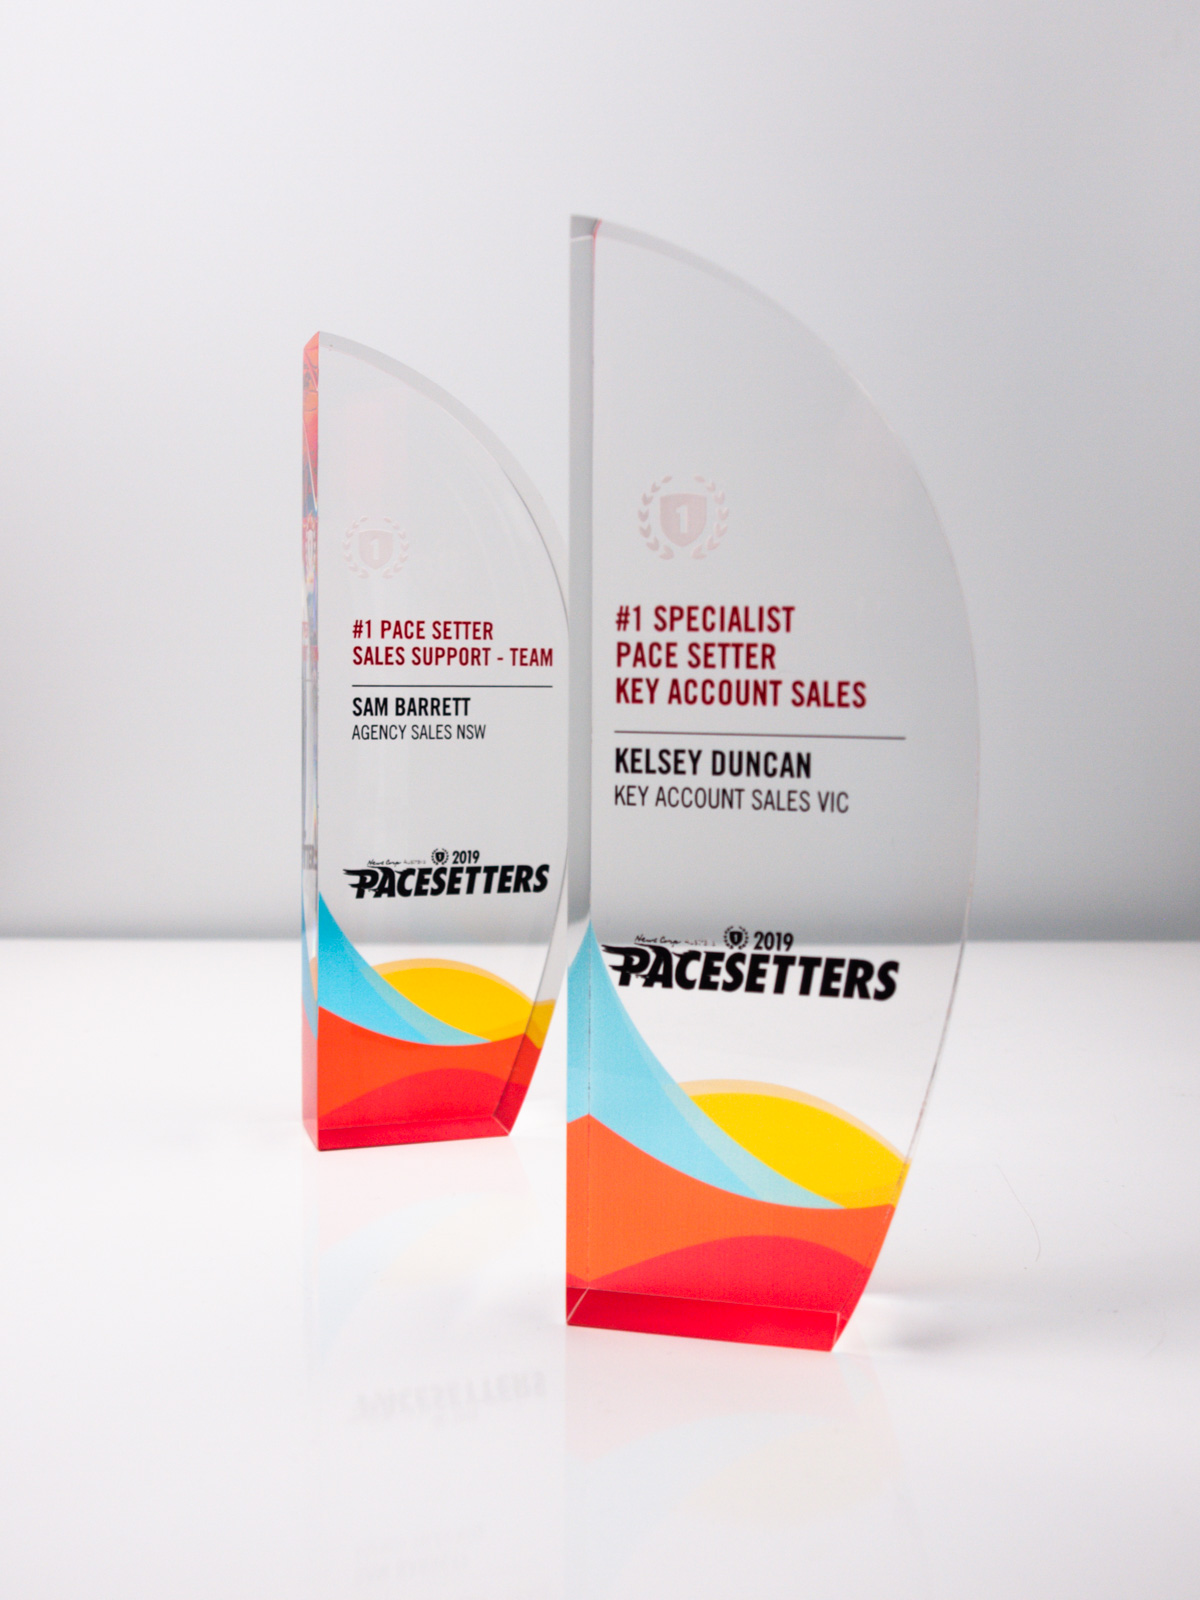 Newscorp Pacesetters Awards